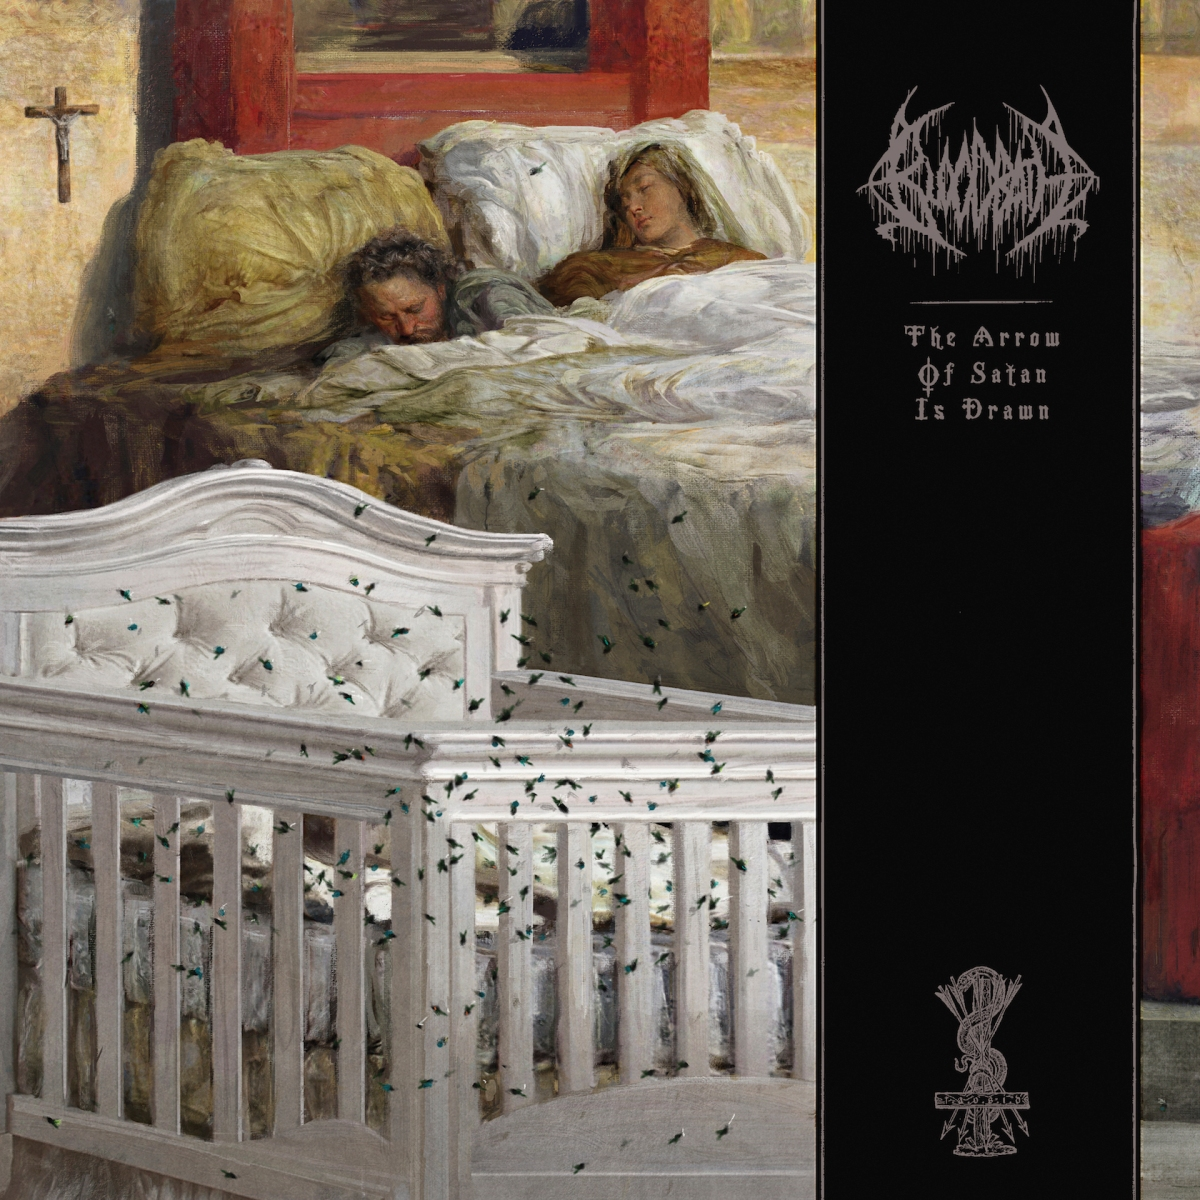 Album Review: The Arrow of Satan Is Drawn - Bloodbath